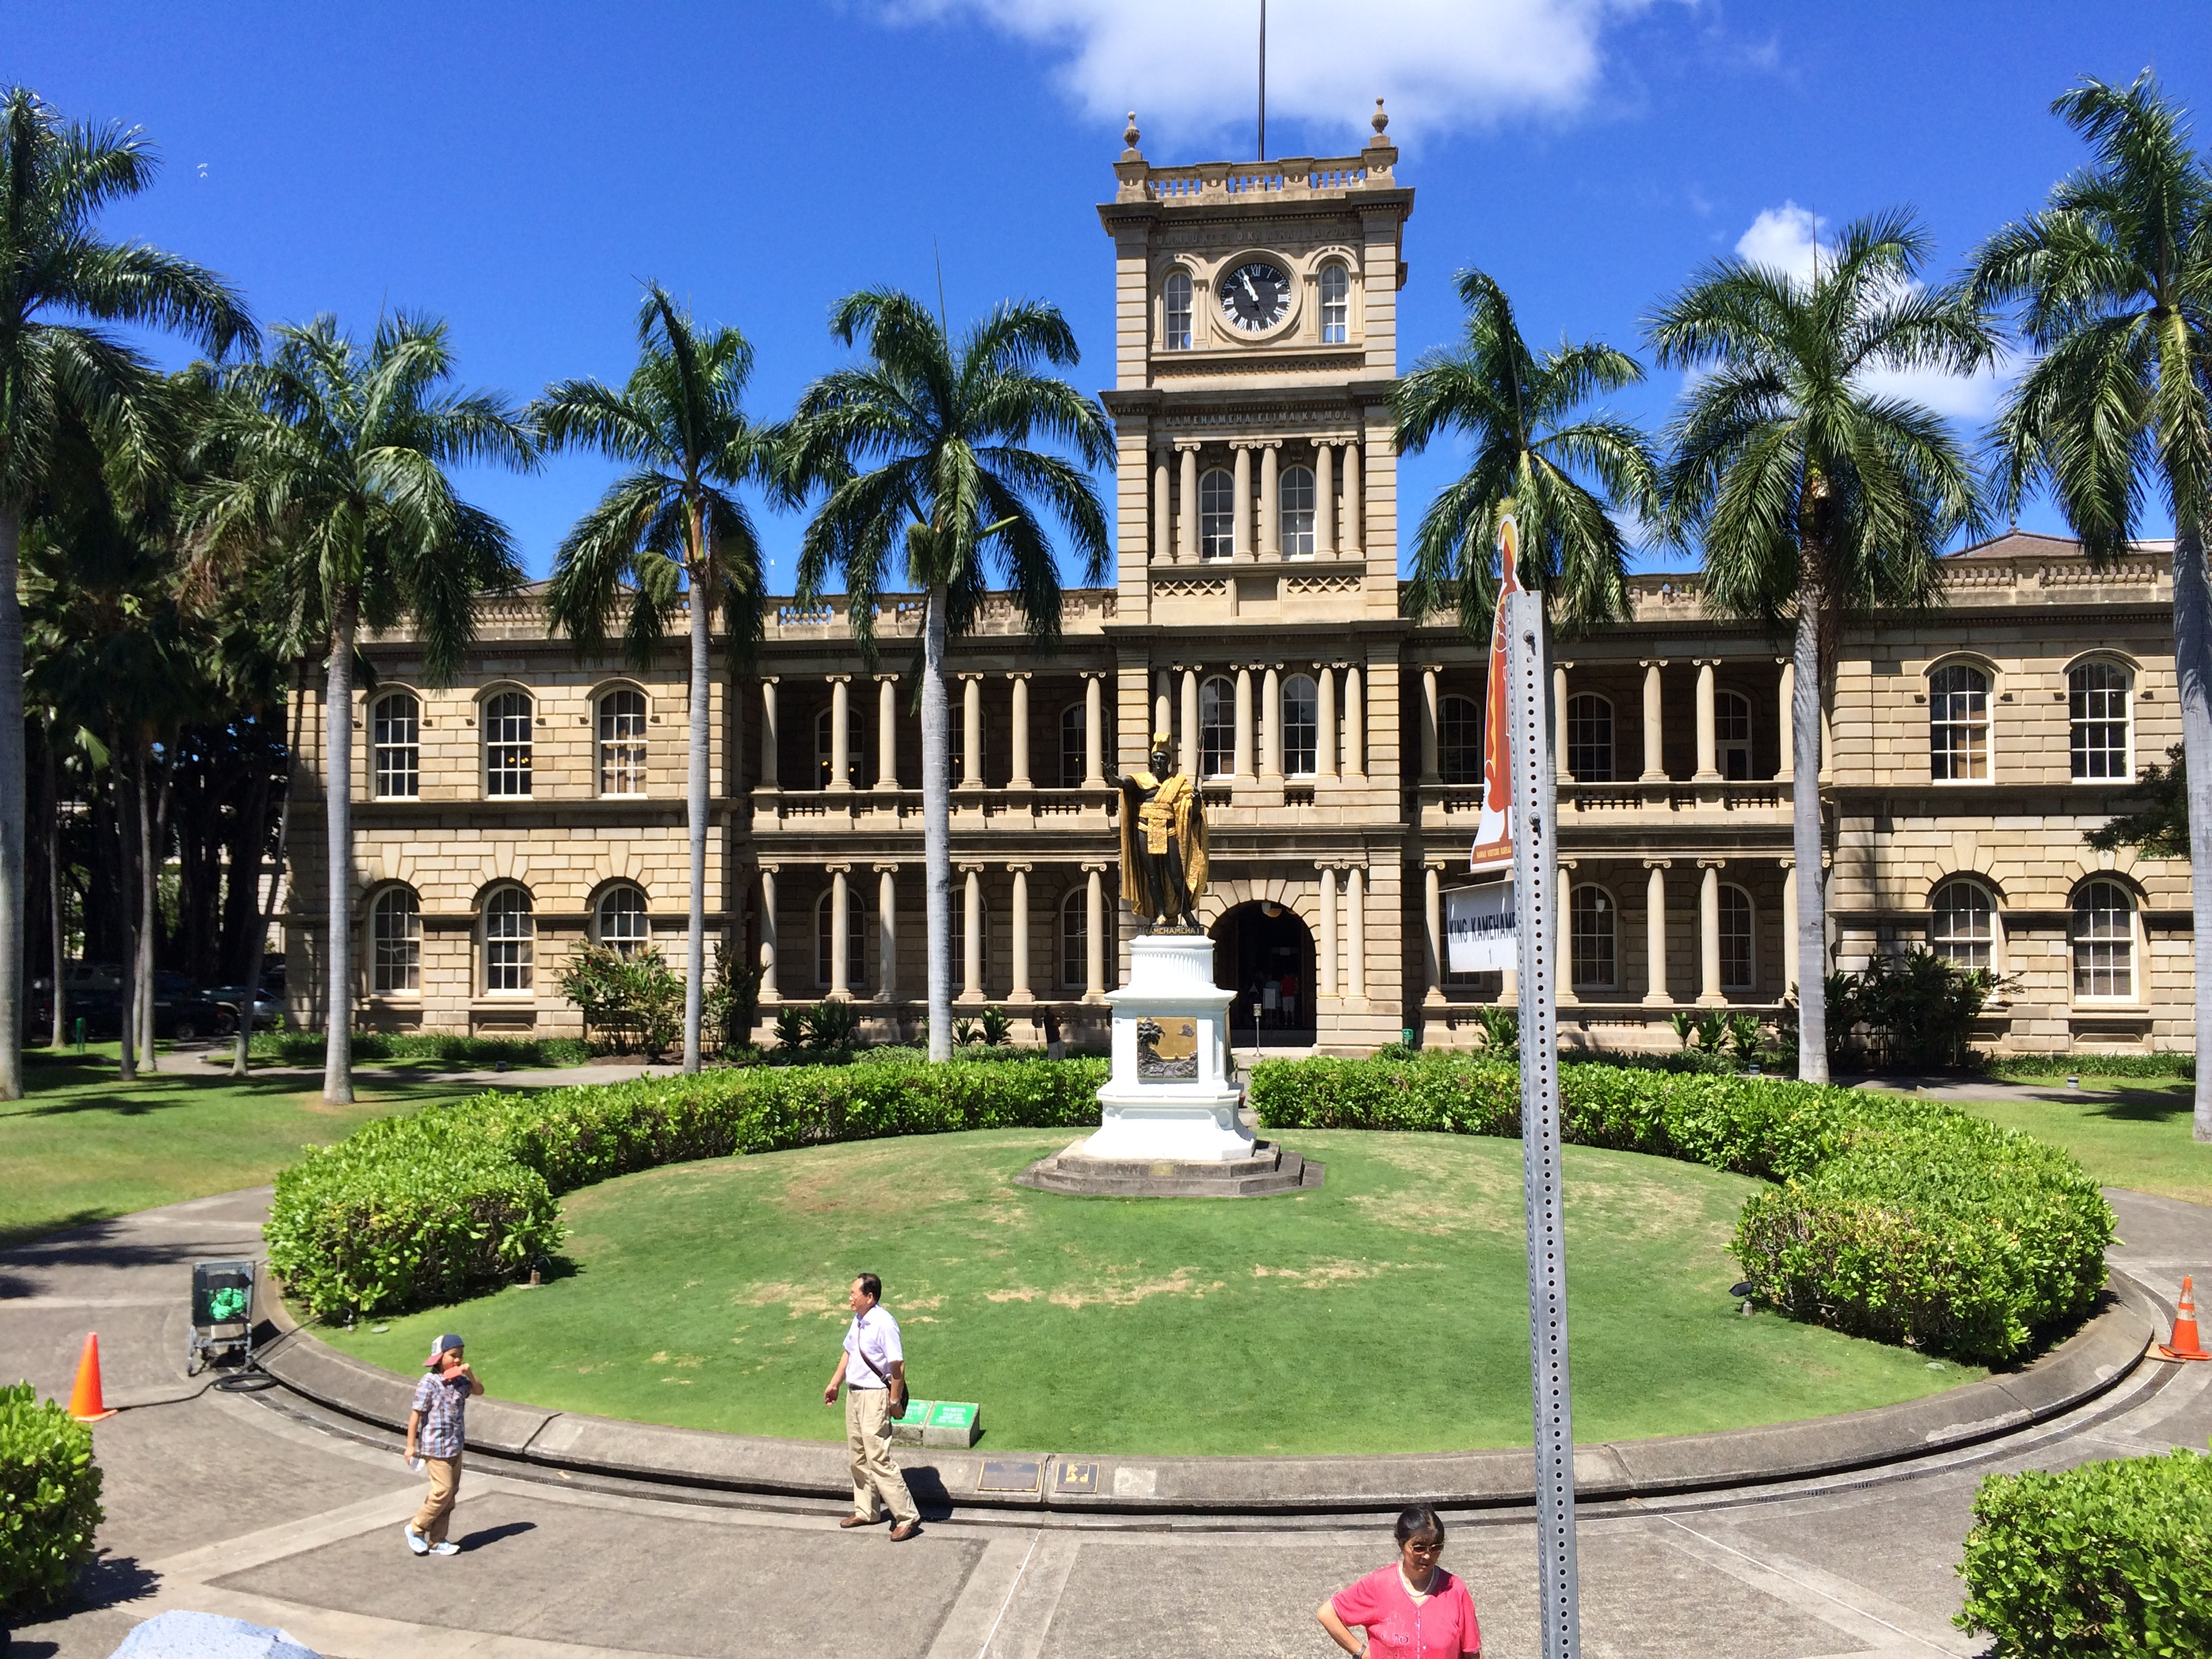 Government building commissioned by Hawaiian King Kamehameha, with his statue in front.